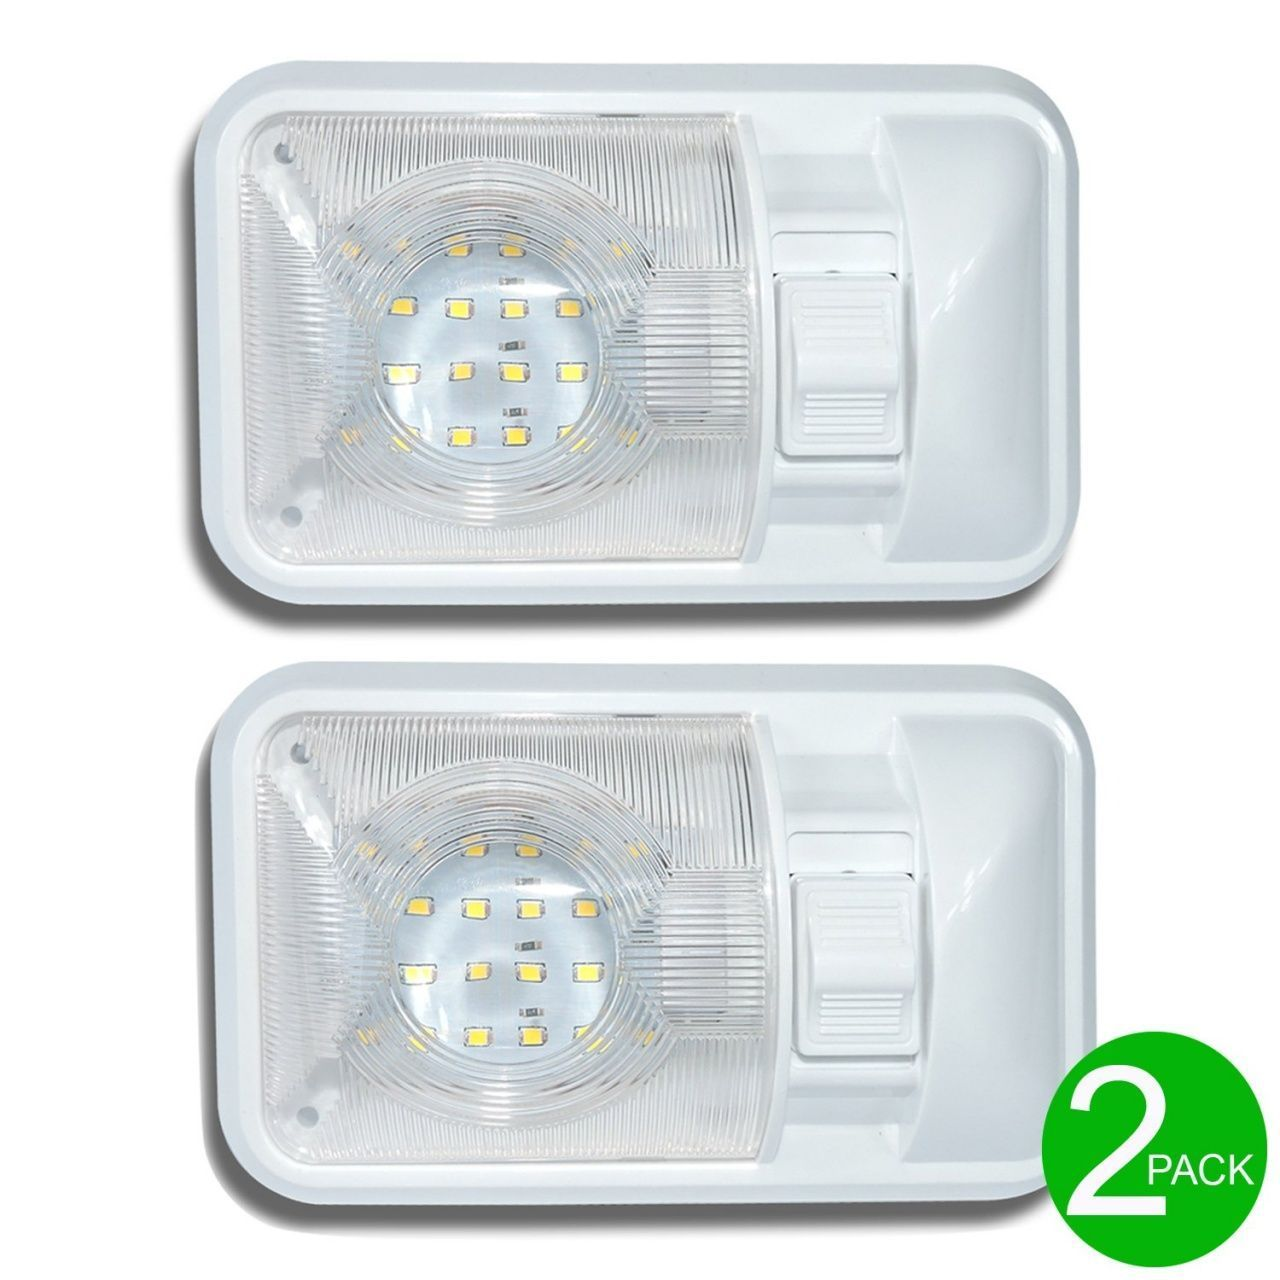 12 Volt Led Rv Porch Lights Led Lights Porch Volt Led Lights Lightsled Porch Volt In 2020 Porch Lighting Rv Led Lights Led Porch Light